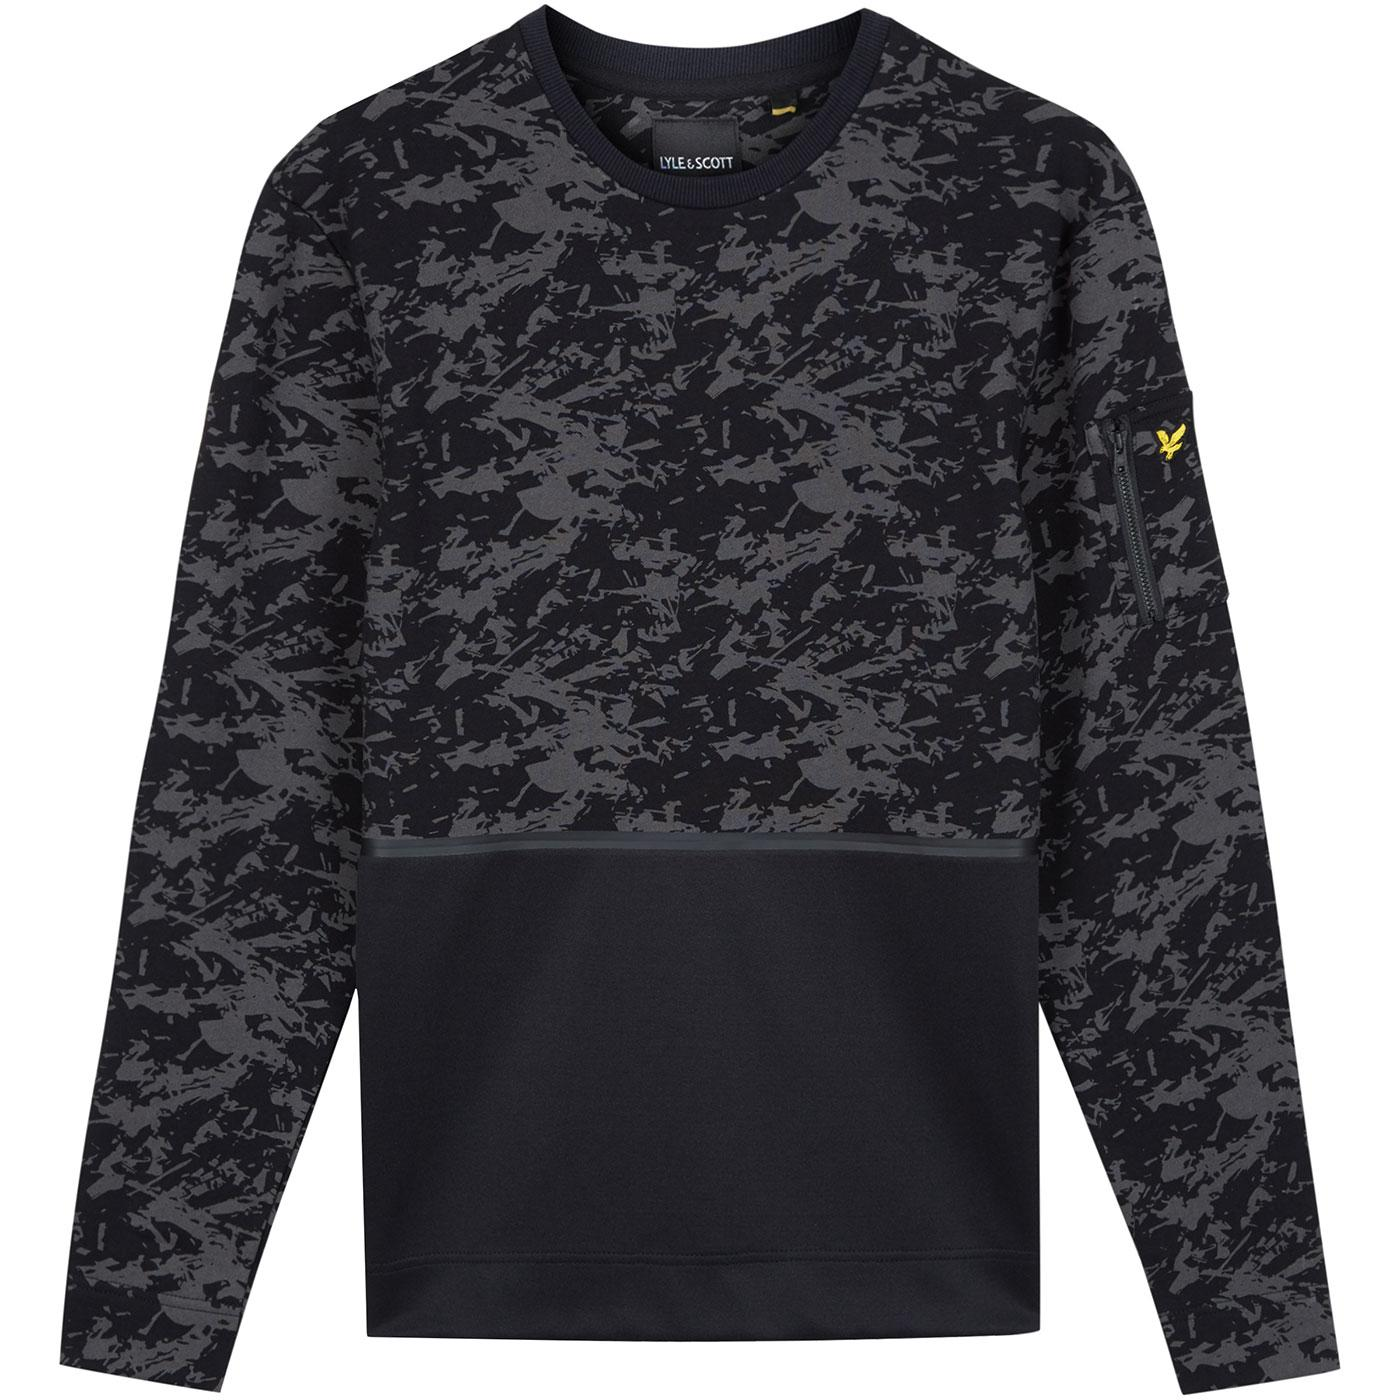 LYLE & SCOTT Casuals Camo Block Print Sweatshirt